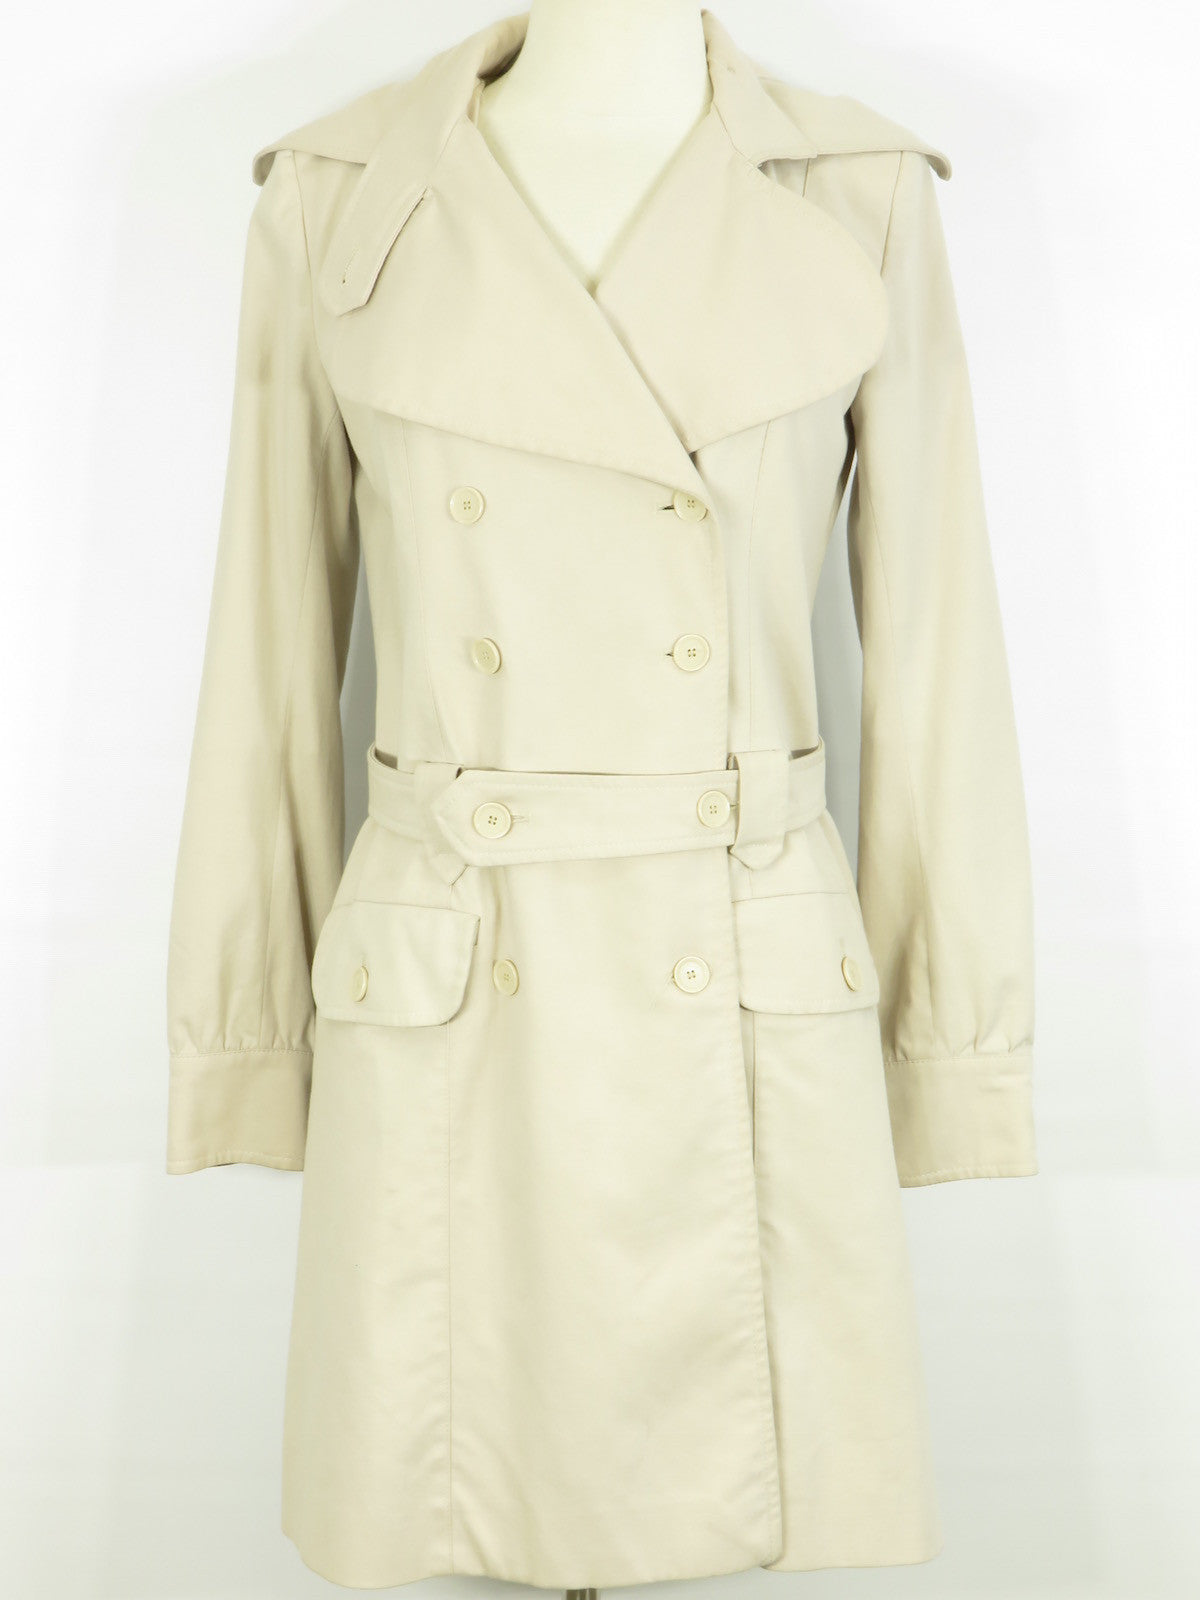 finest selection eeb61 405c0 PATRIZIA PEPE FIRENZE Women Beige Double Breasted Trench Coat 42